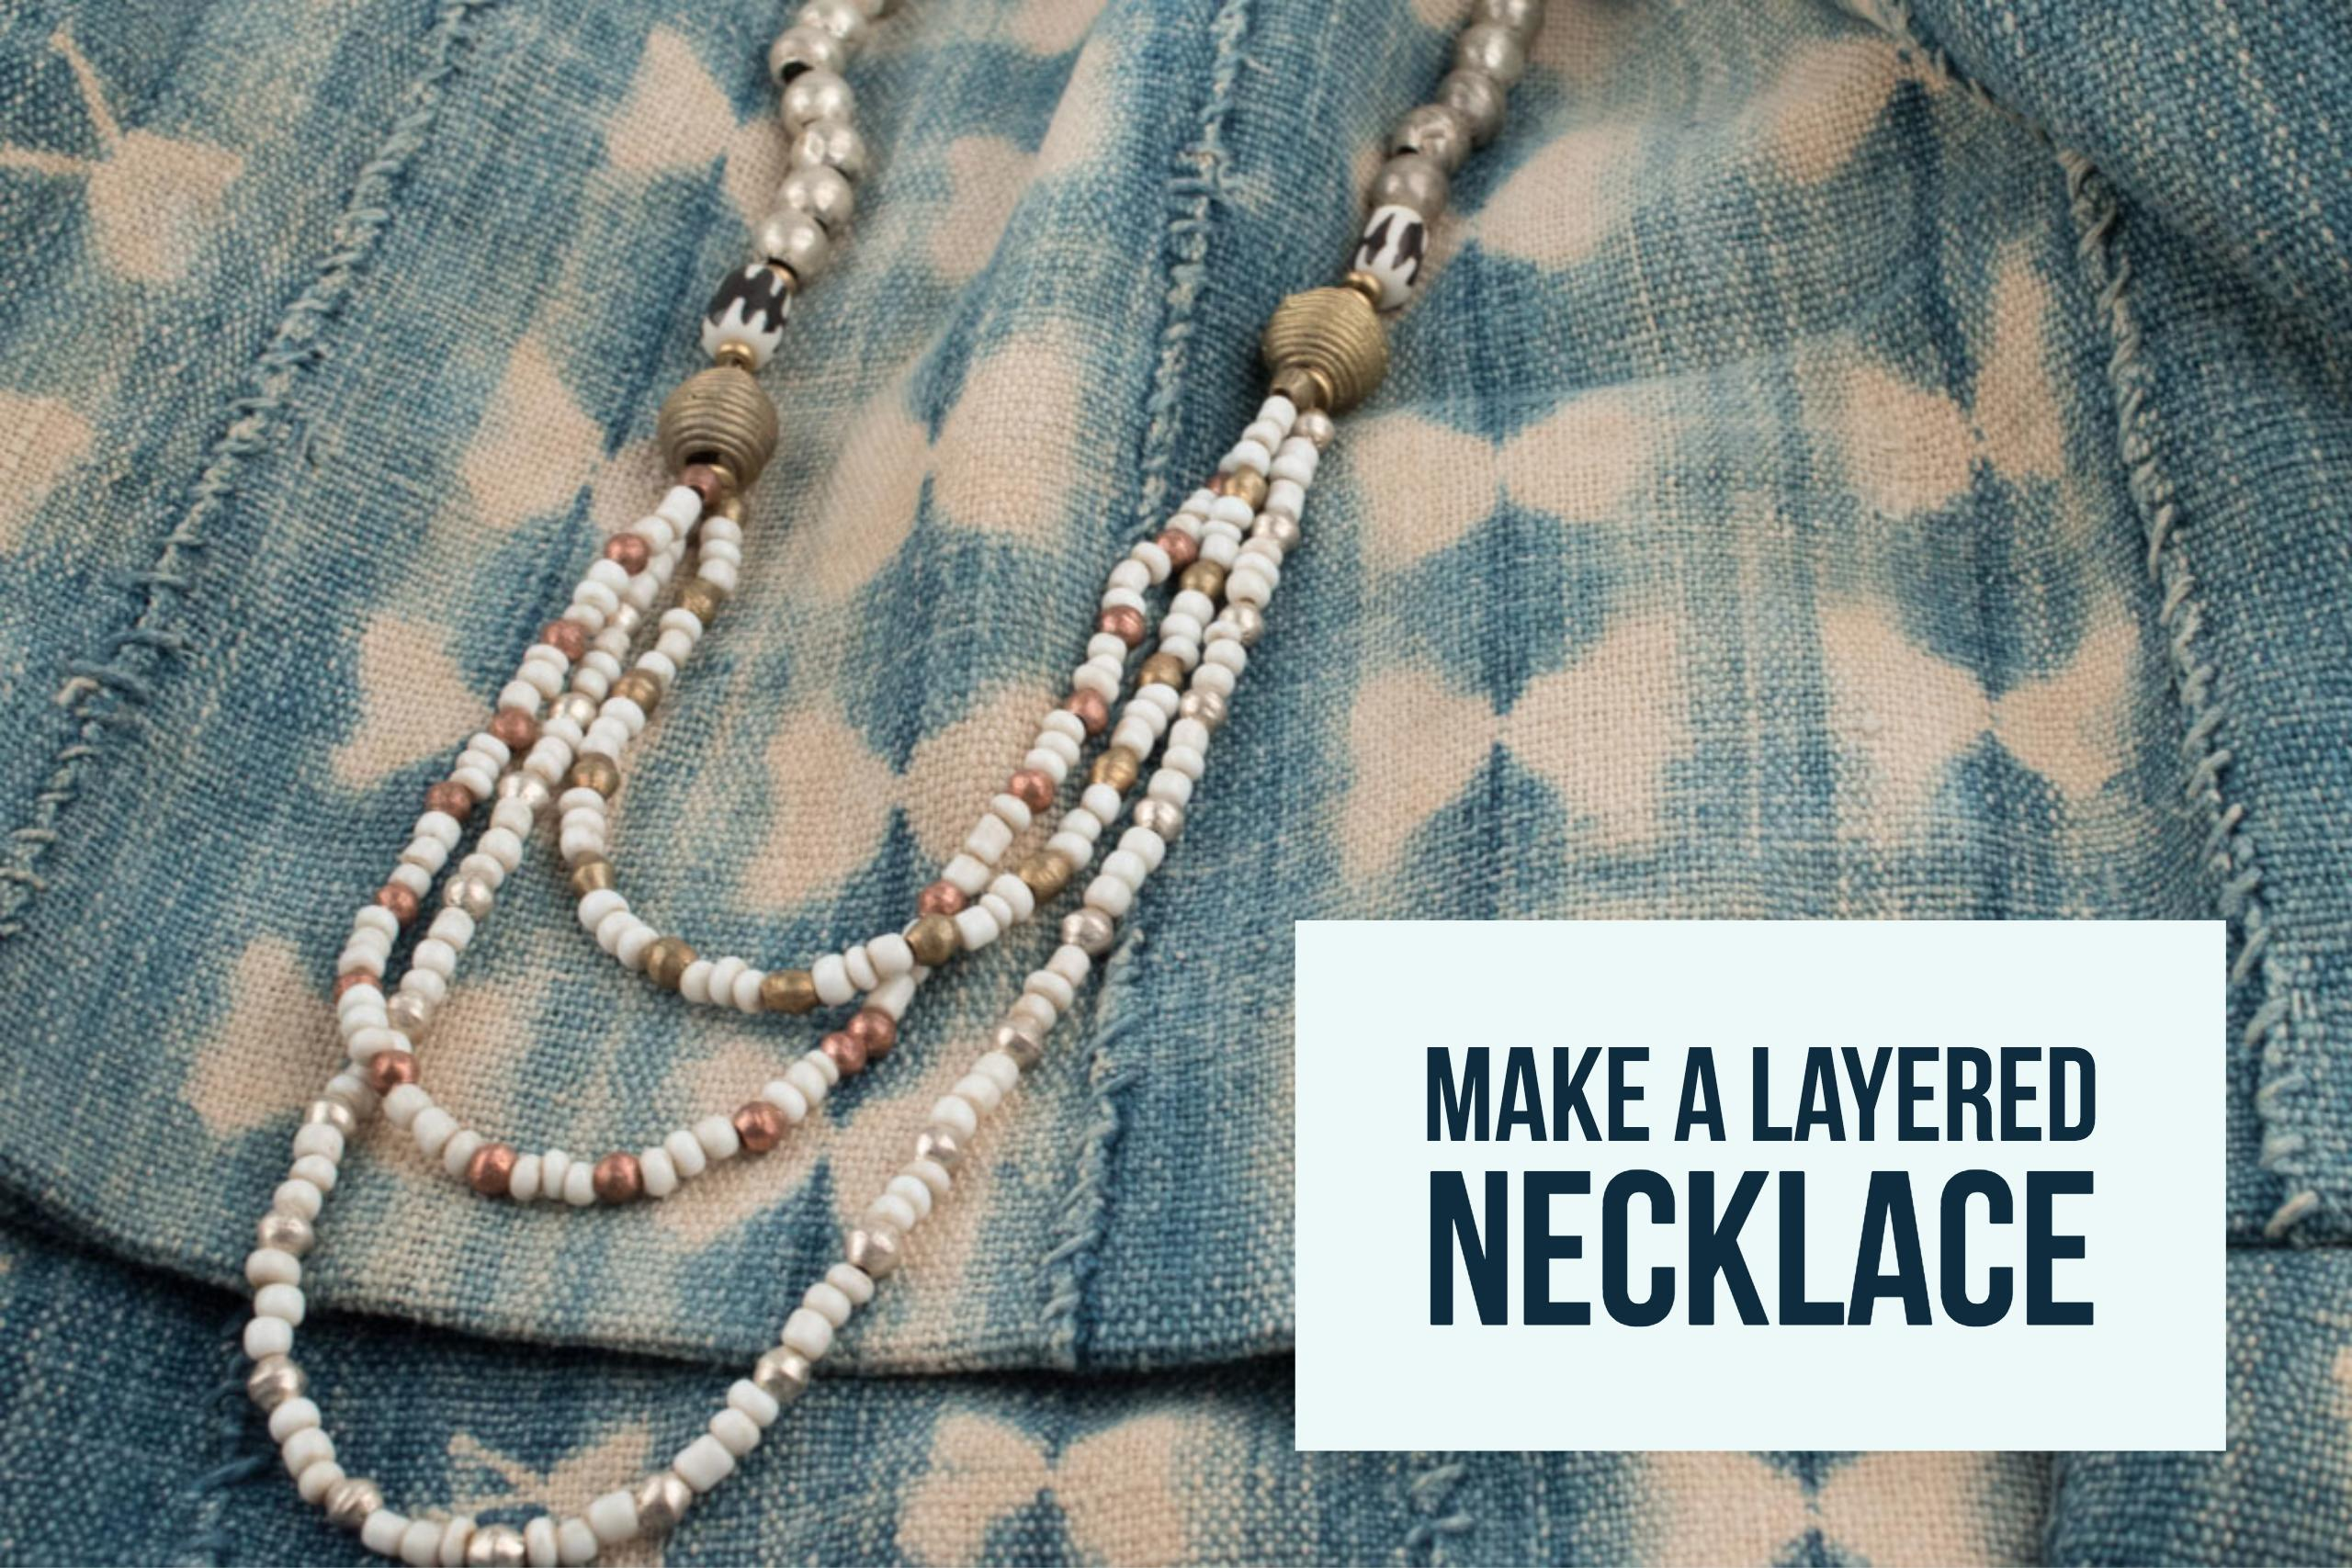 How to Make a Layered Necklace